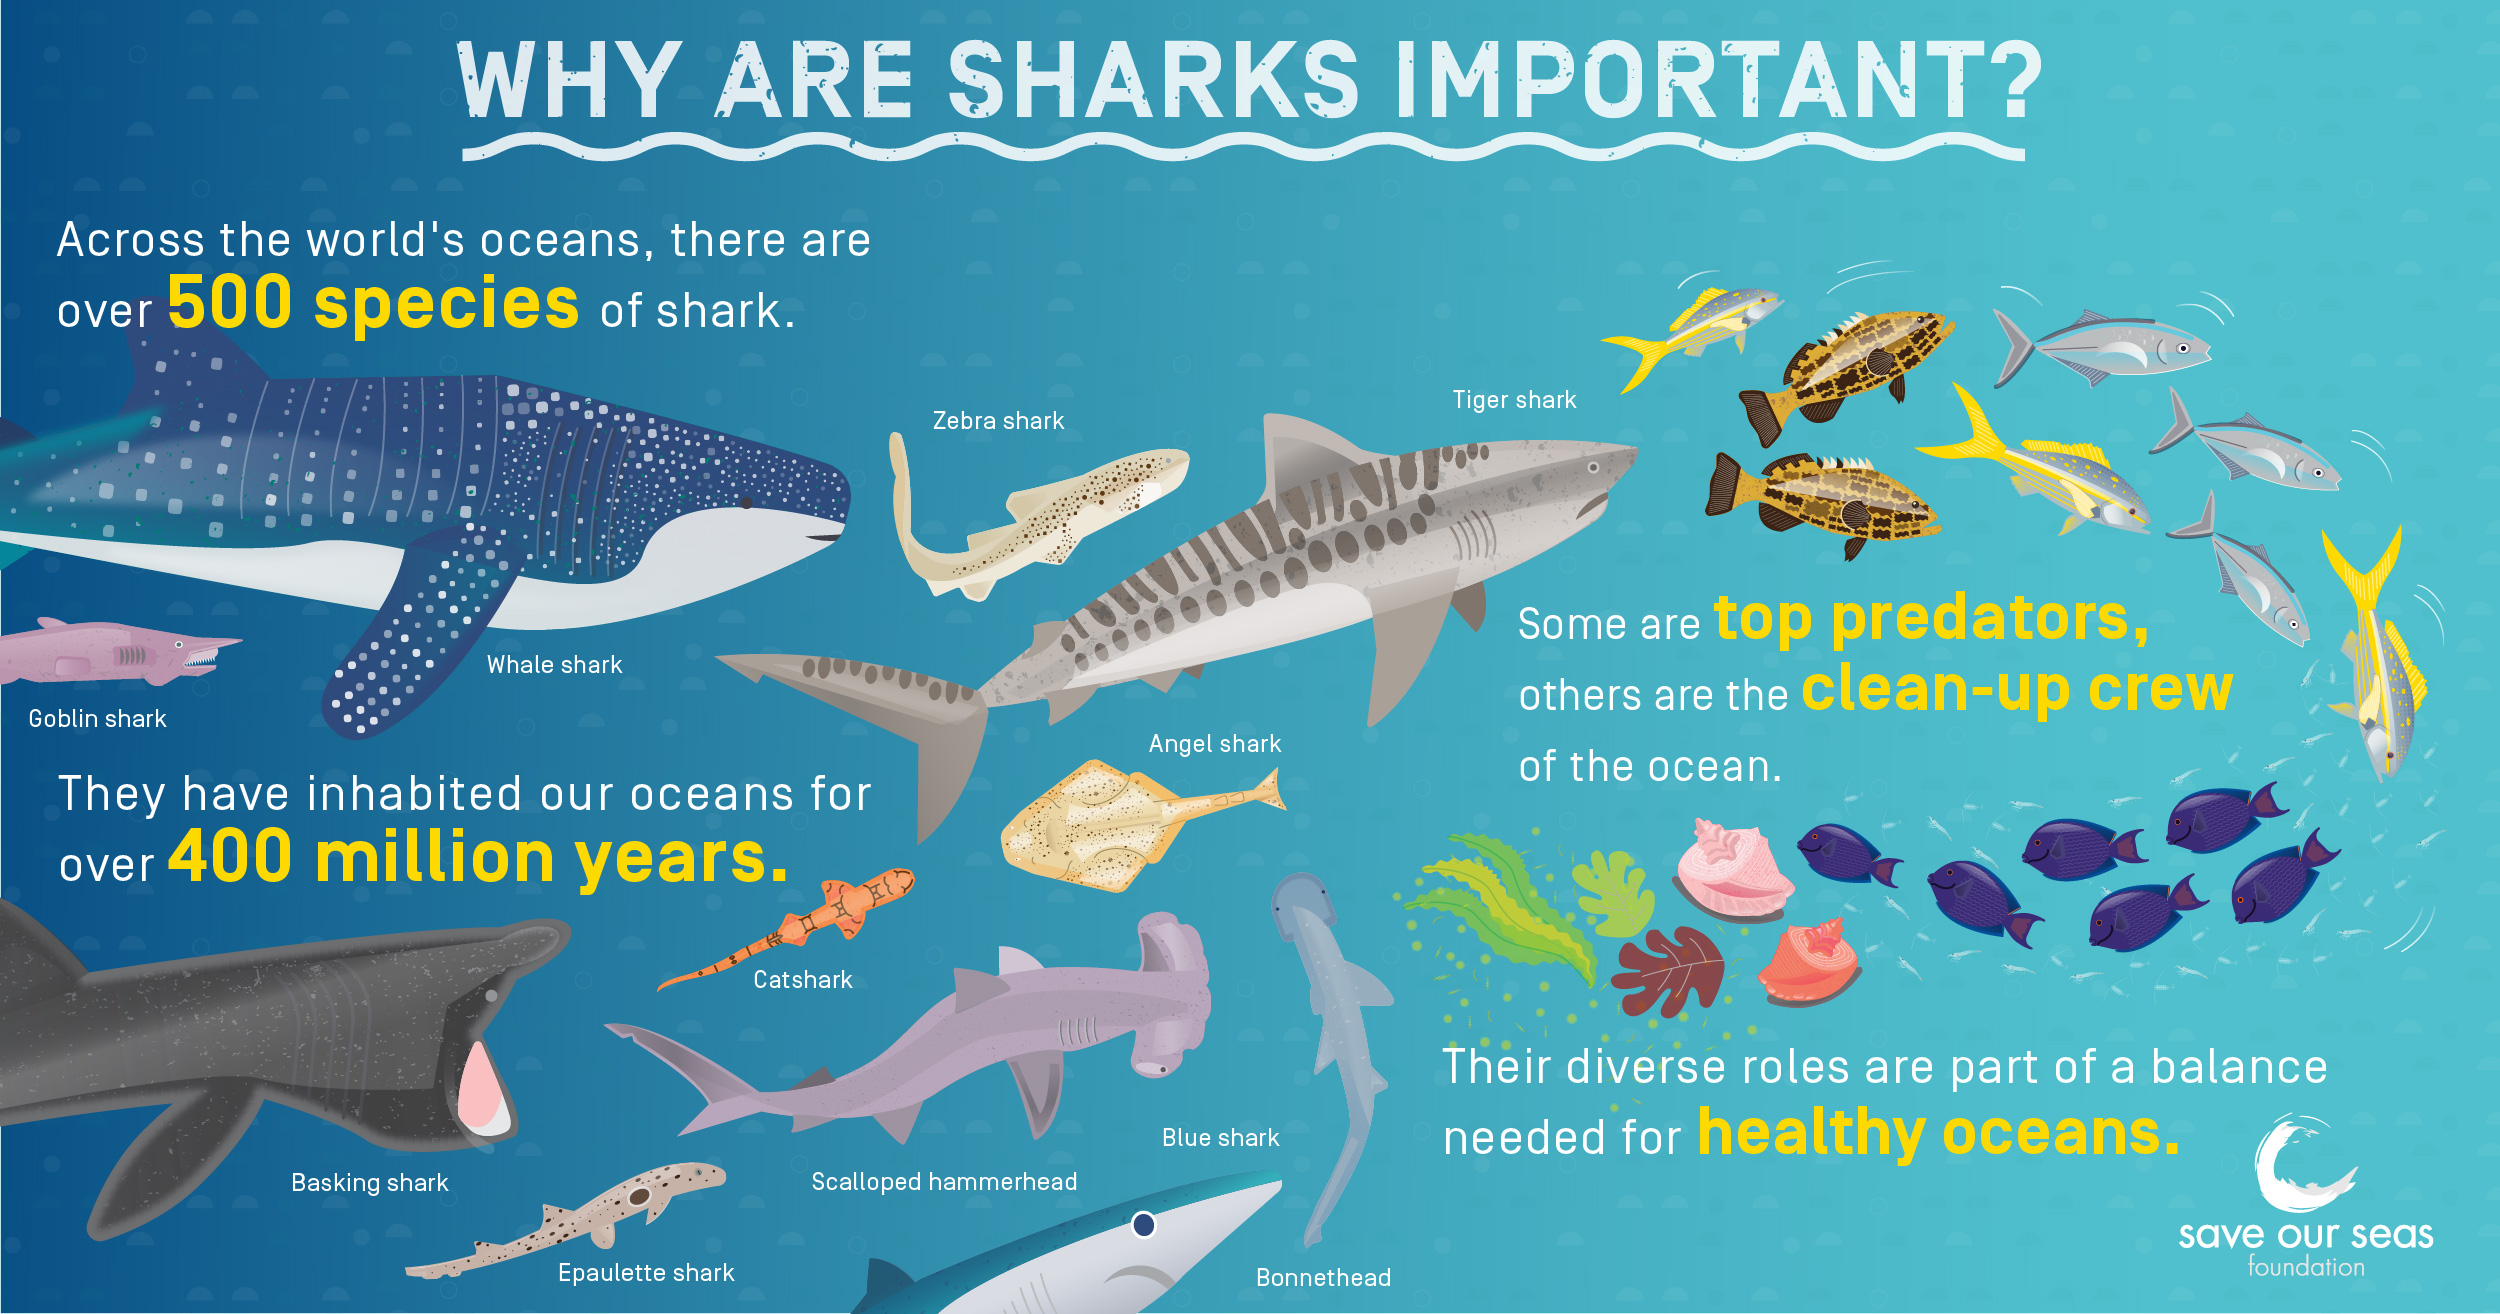 Why are sharks important? Why we need sharks.